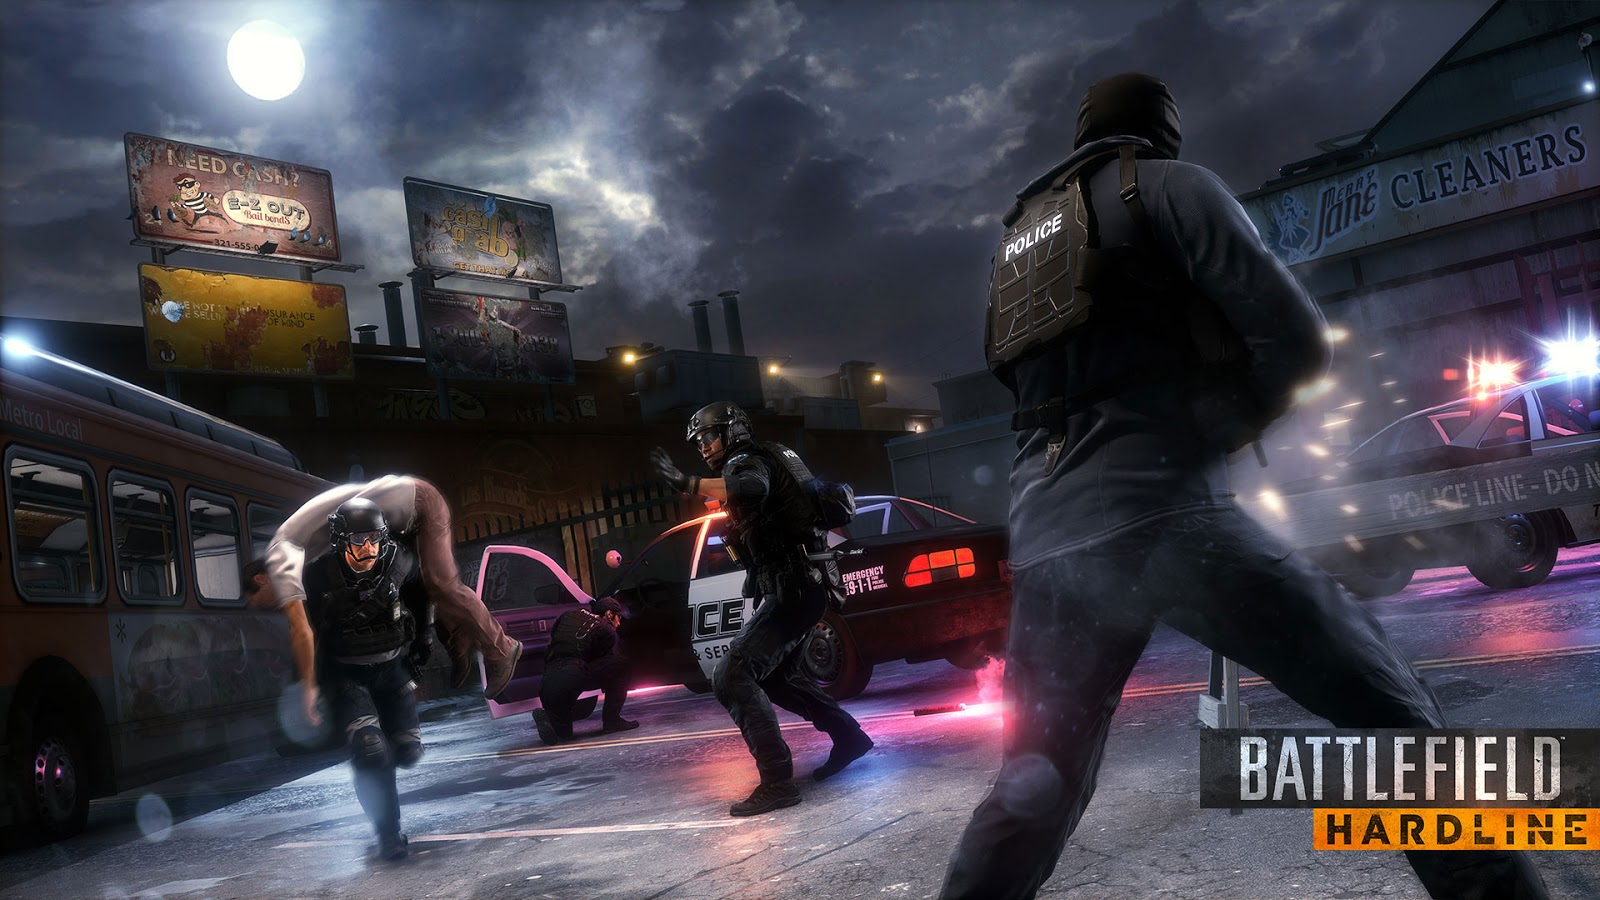 Gameplay in the game